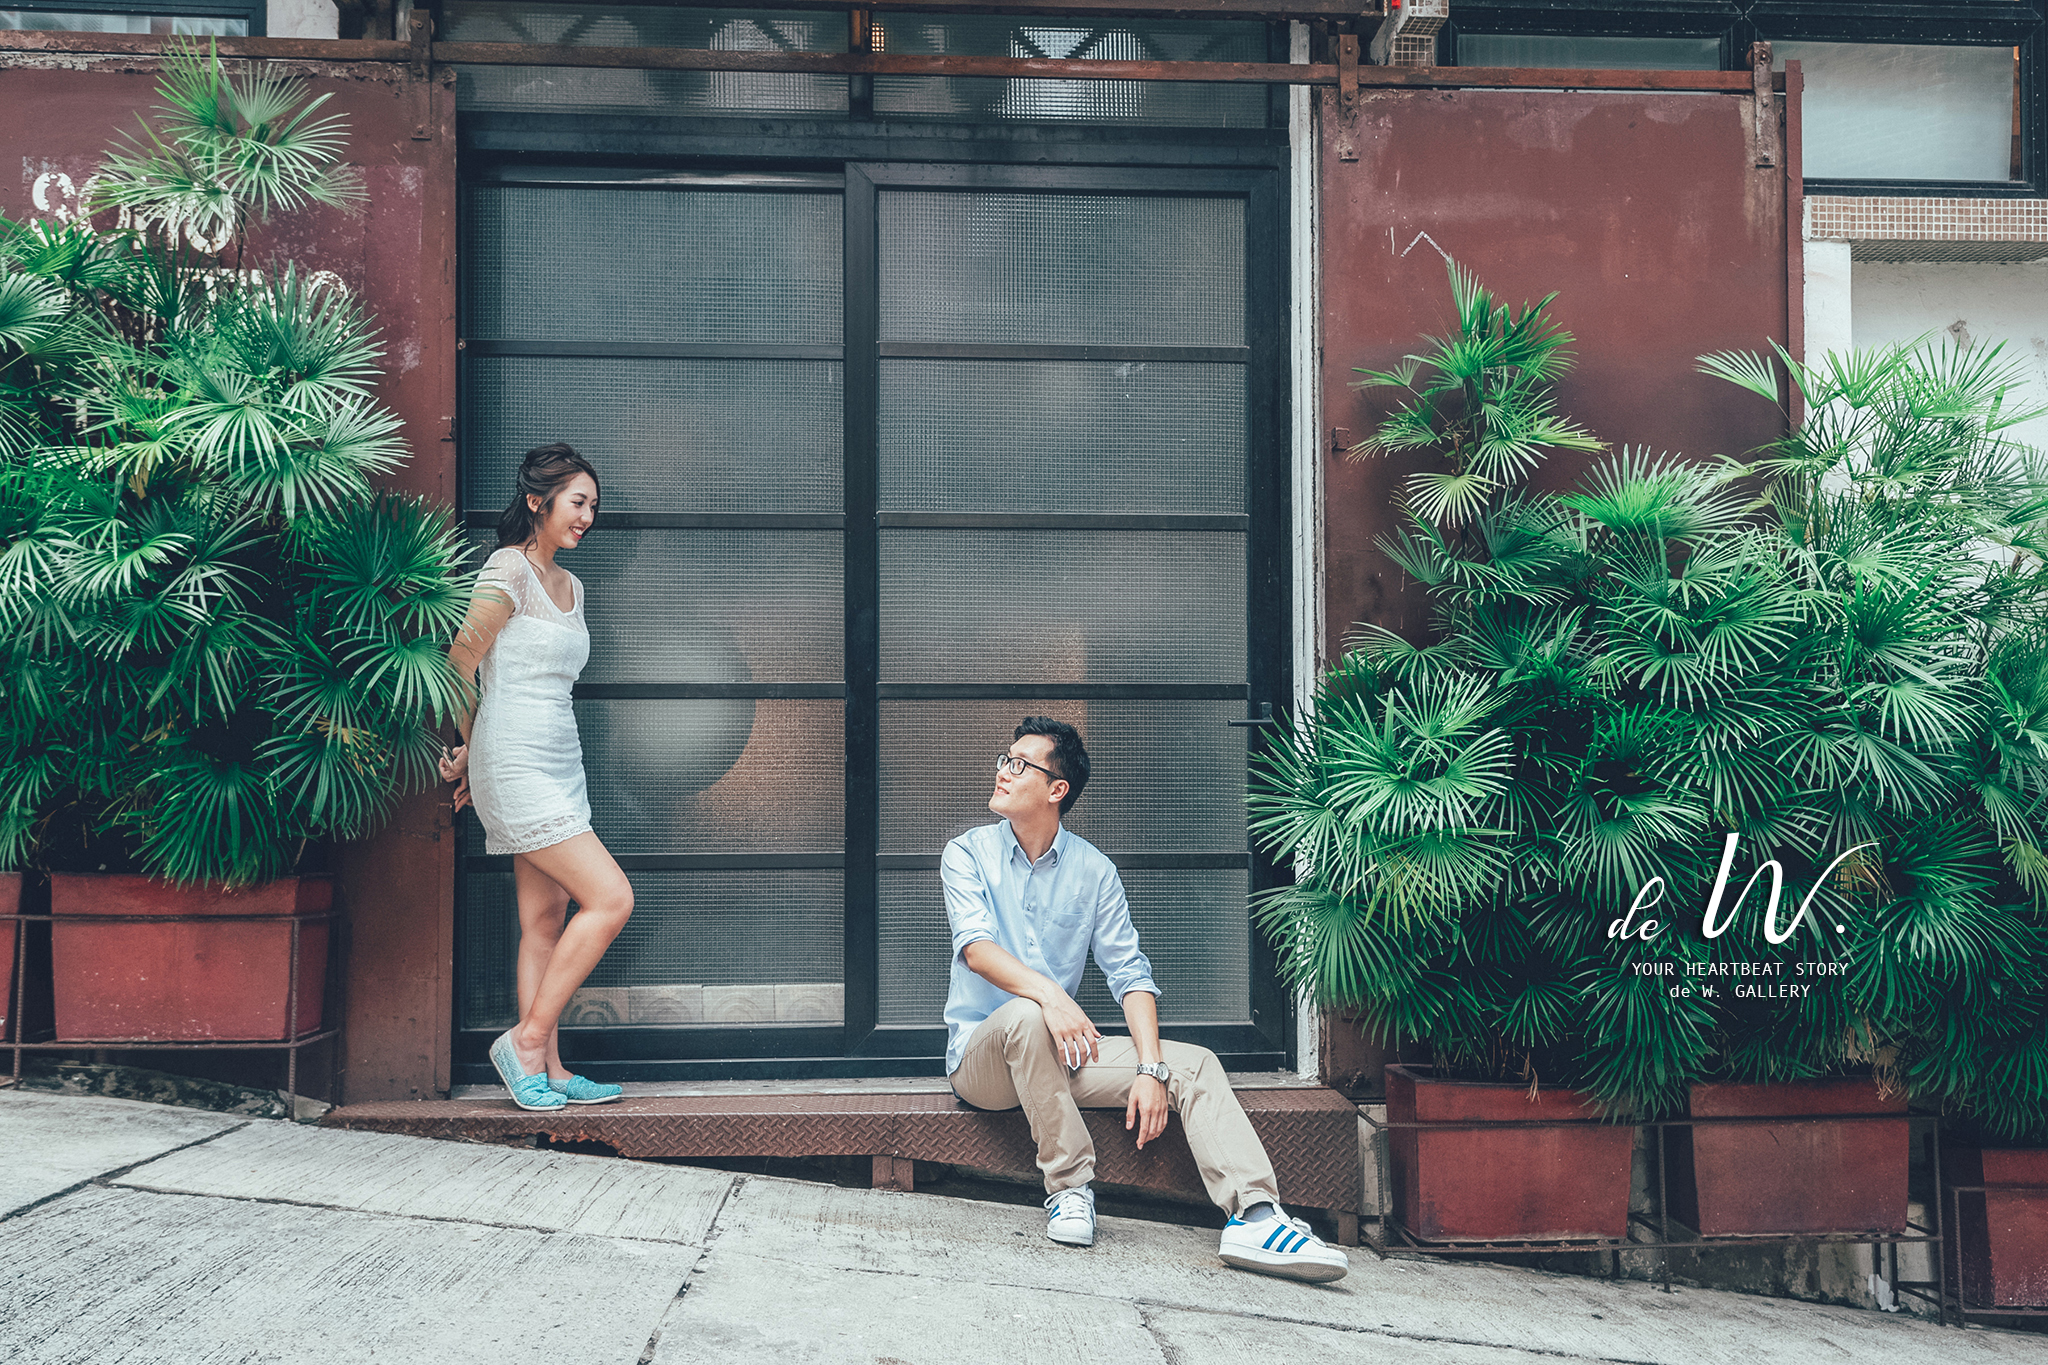 2048 de w gallery Film style hong kong 底片 拍拖 engagement vsco 故事 中環 西環 central-05